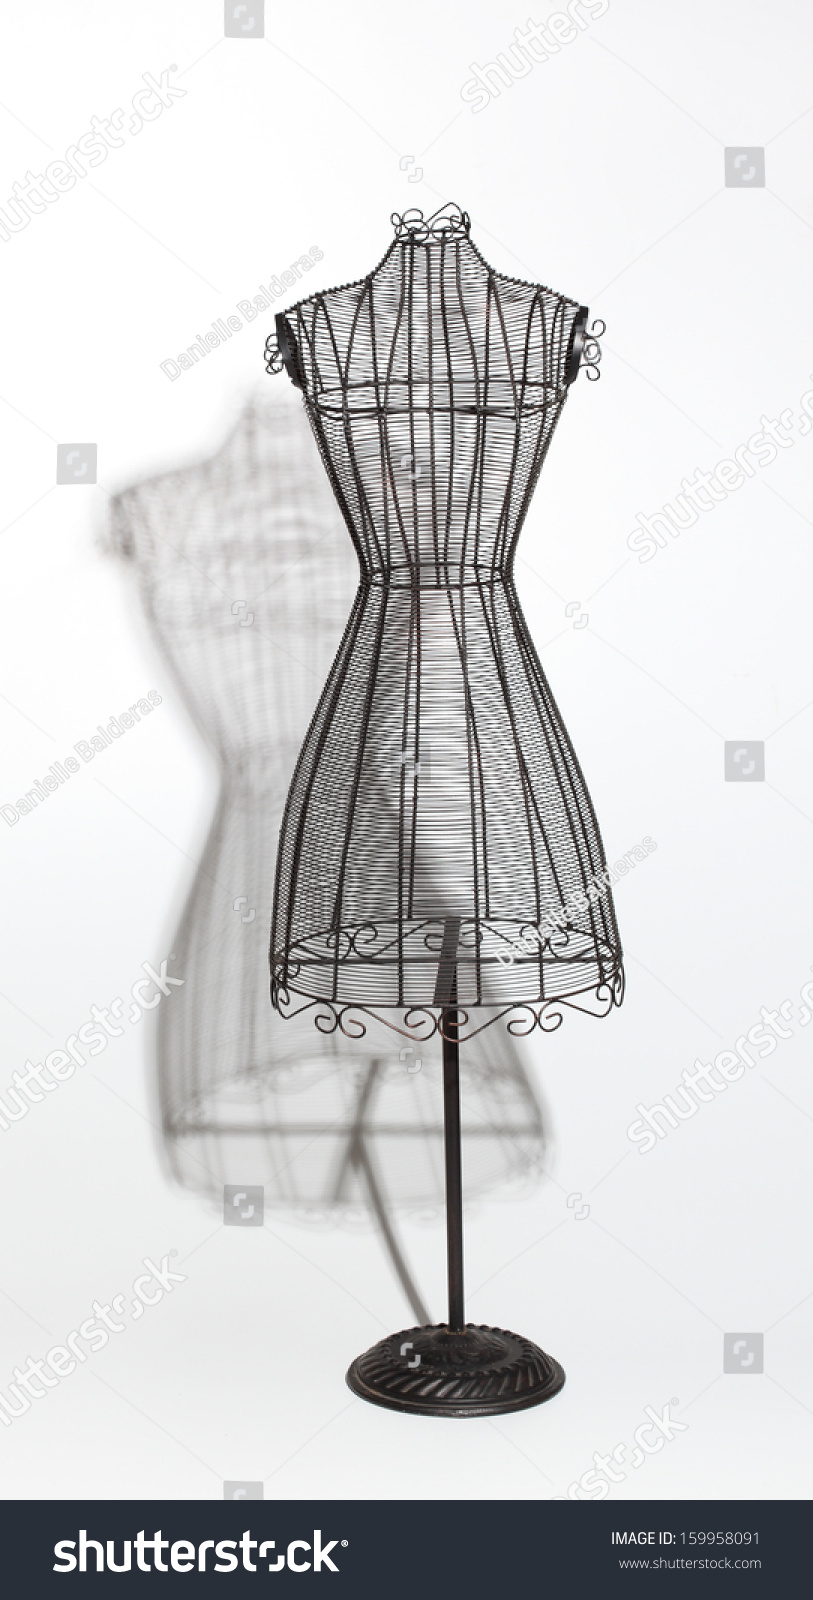 Royalty-free Vintage Wire Dress Form #159958091 Stock Photo ...